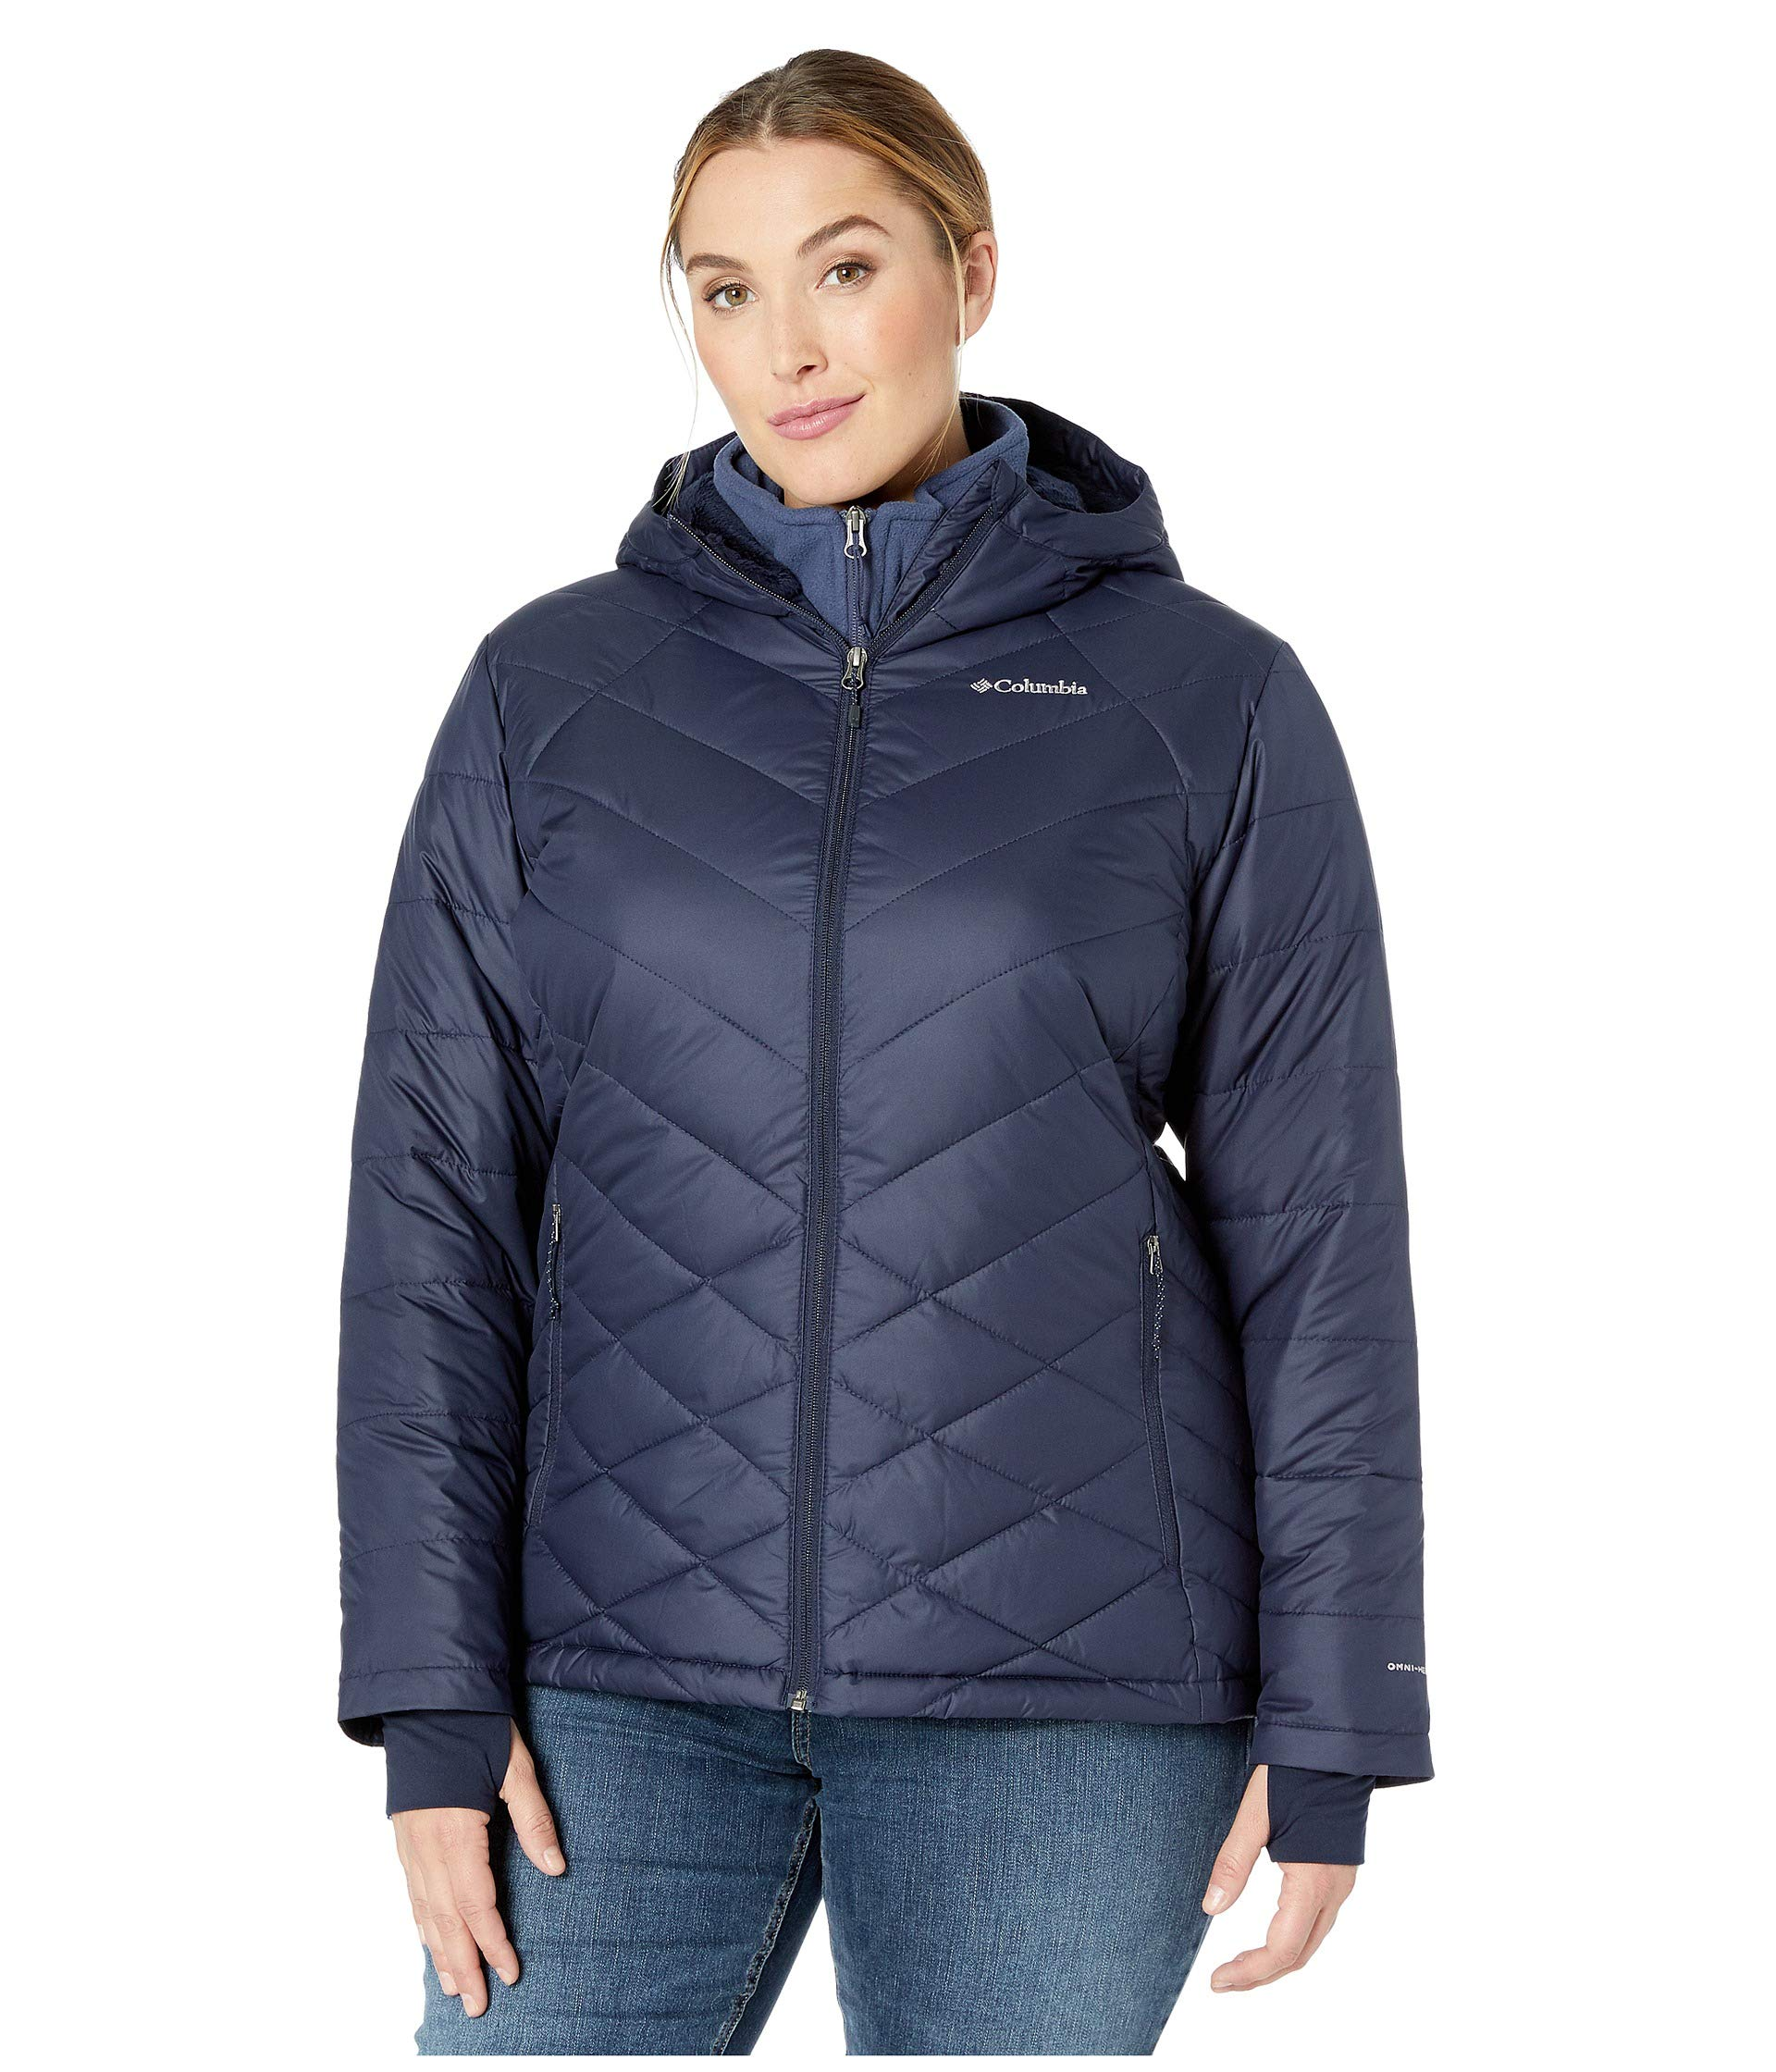 Columbia Women's Plus Size Heavenly HDD Jacket, Dark Nocturnal, 2X by Columbia